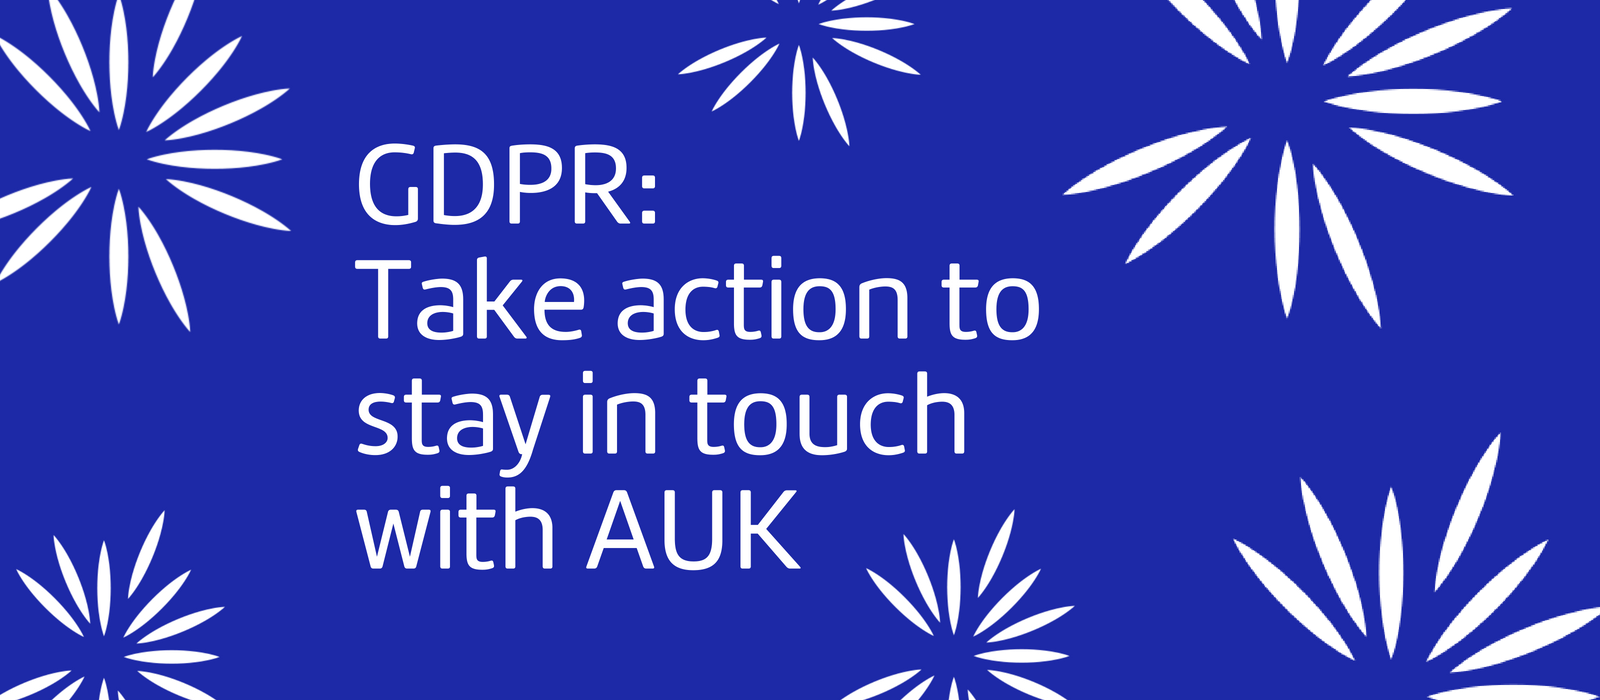 Stay in Touch with AUK: Take Action Today